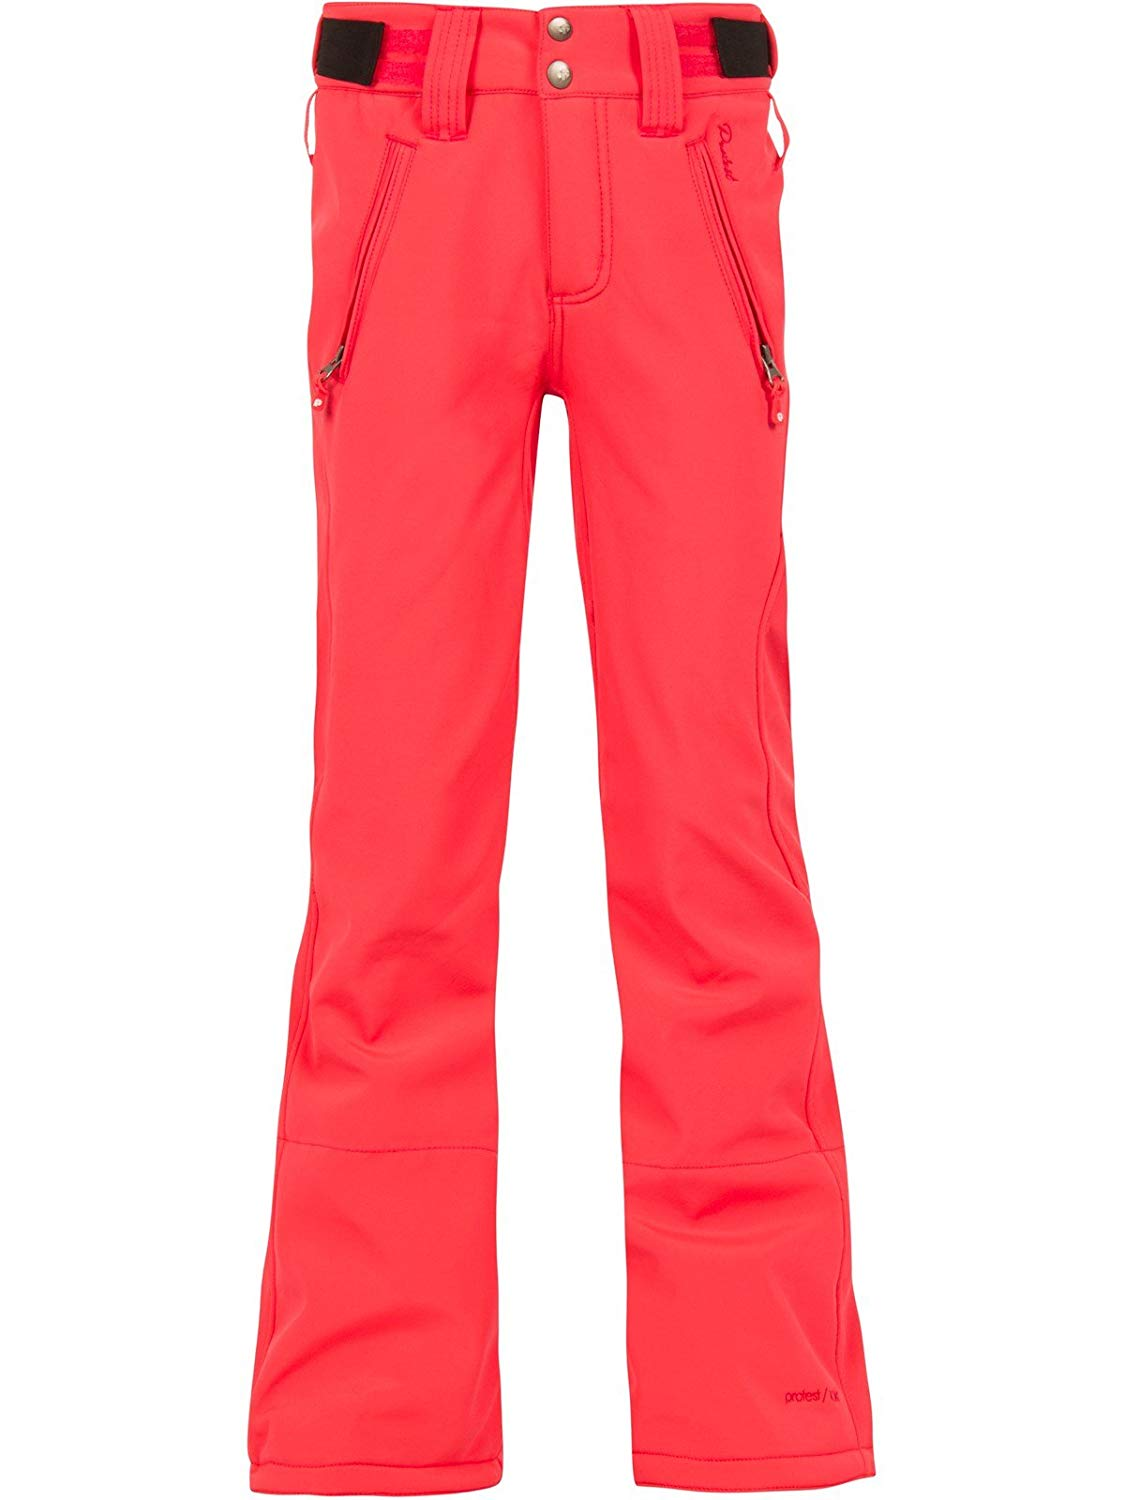 a1b427d5126 Get Quotations · Protest Pink Cerise Lole Softshell Girls Snowboarding Pants